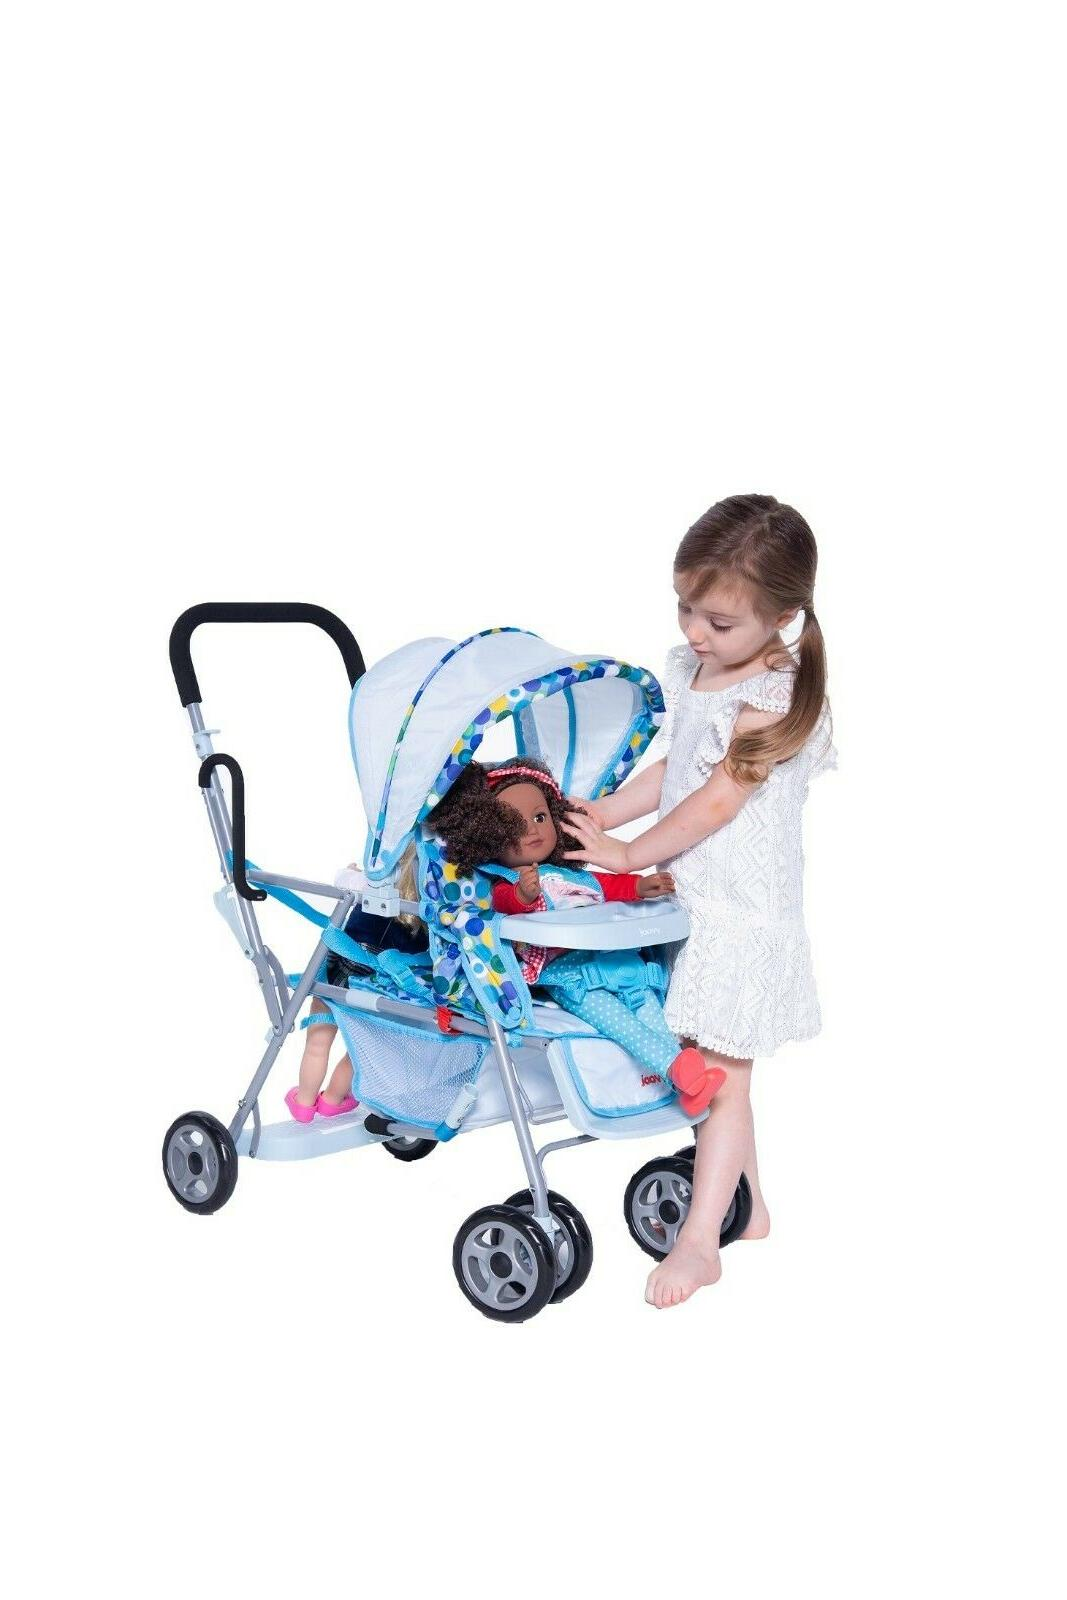 Joovy Stroller Toy Blue For Girls Toddlers